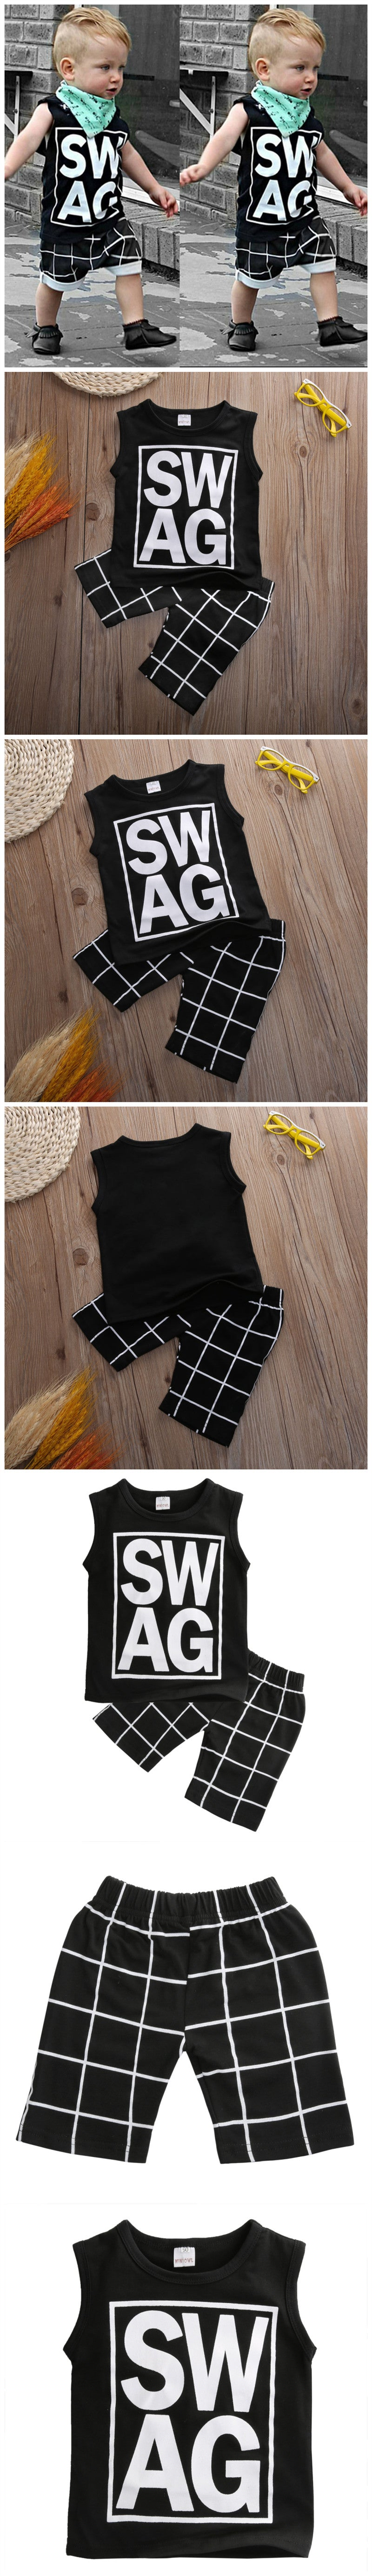 Cute 2pcs Cool Toddler Clothing Letter Printed T-shirt Tops+Casual Pants